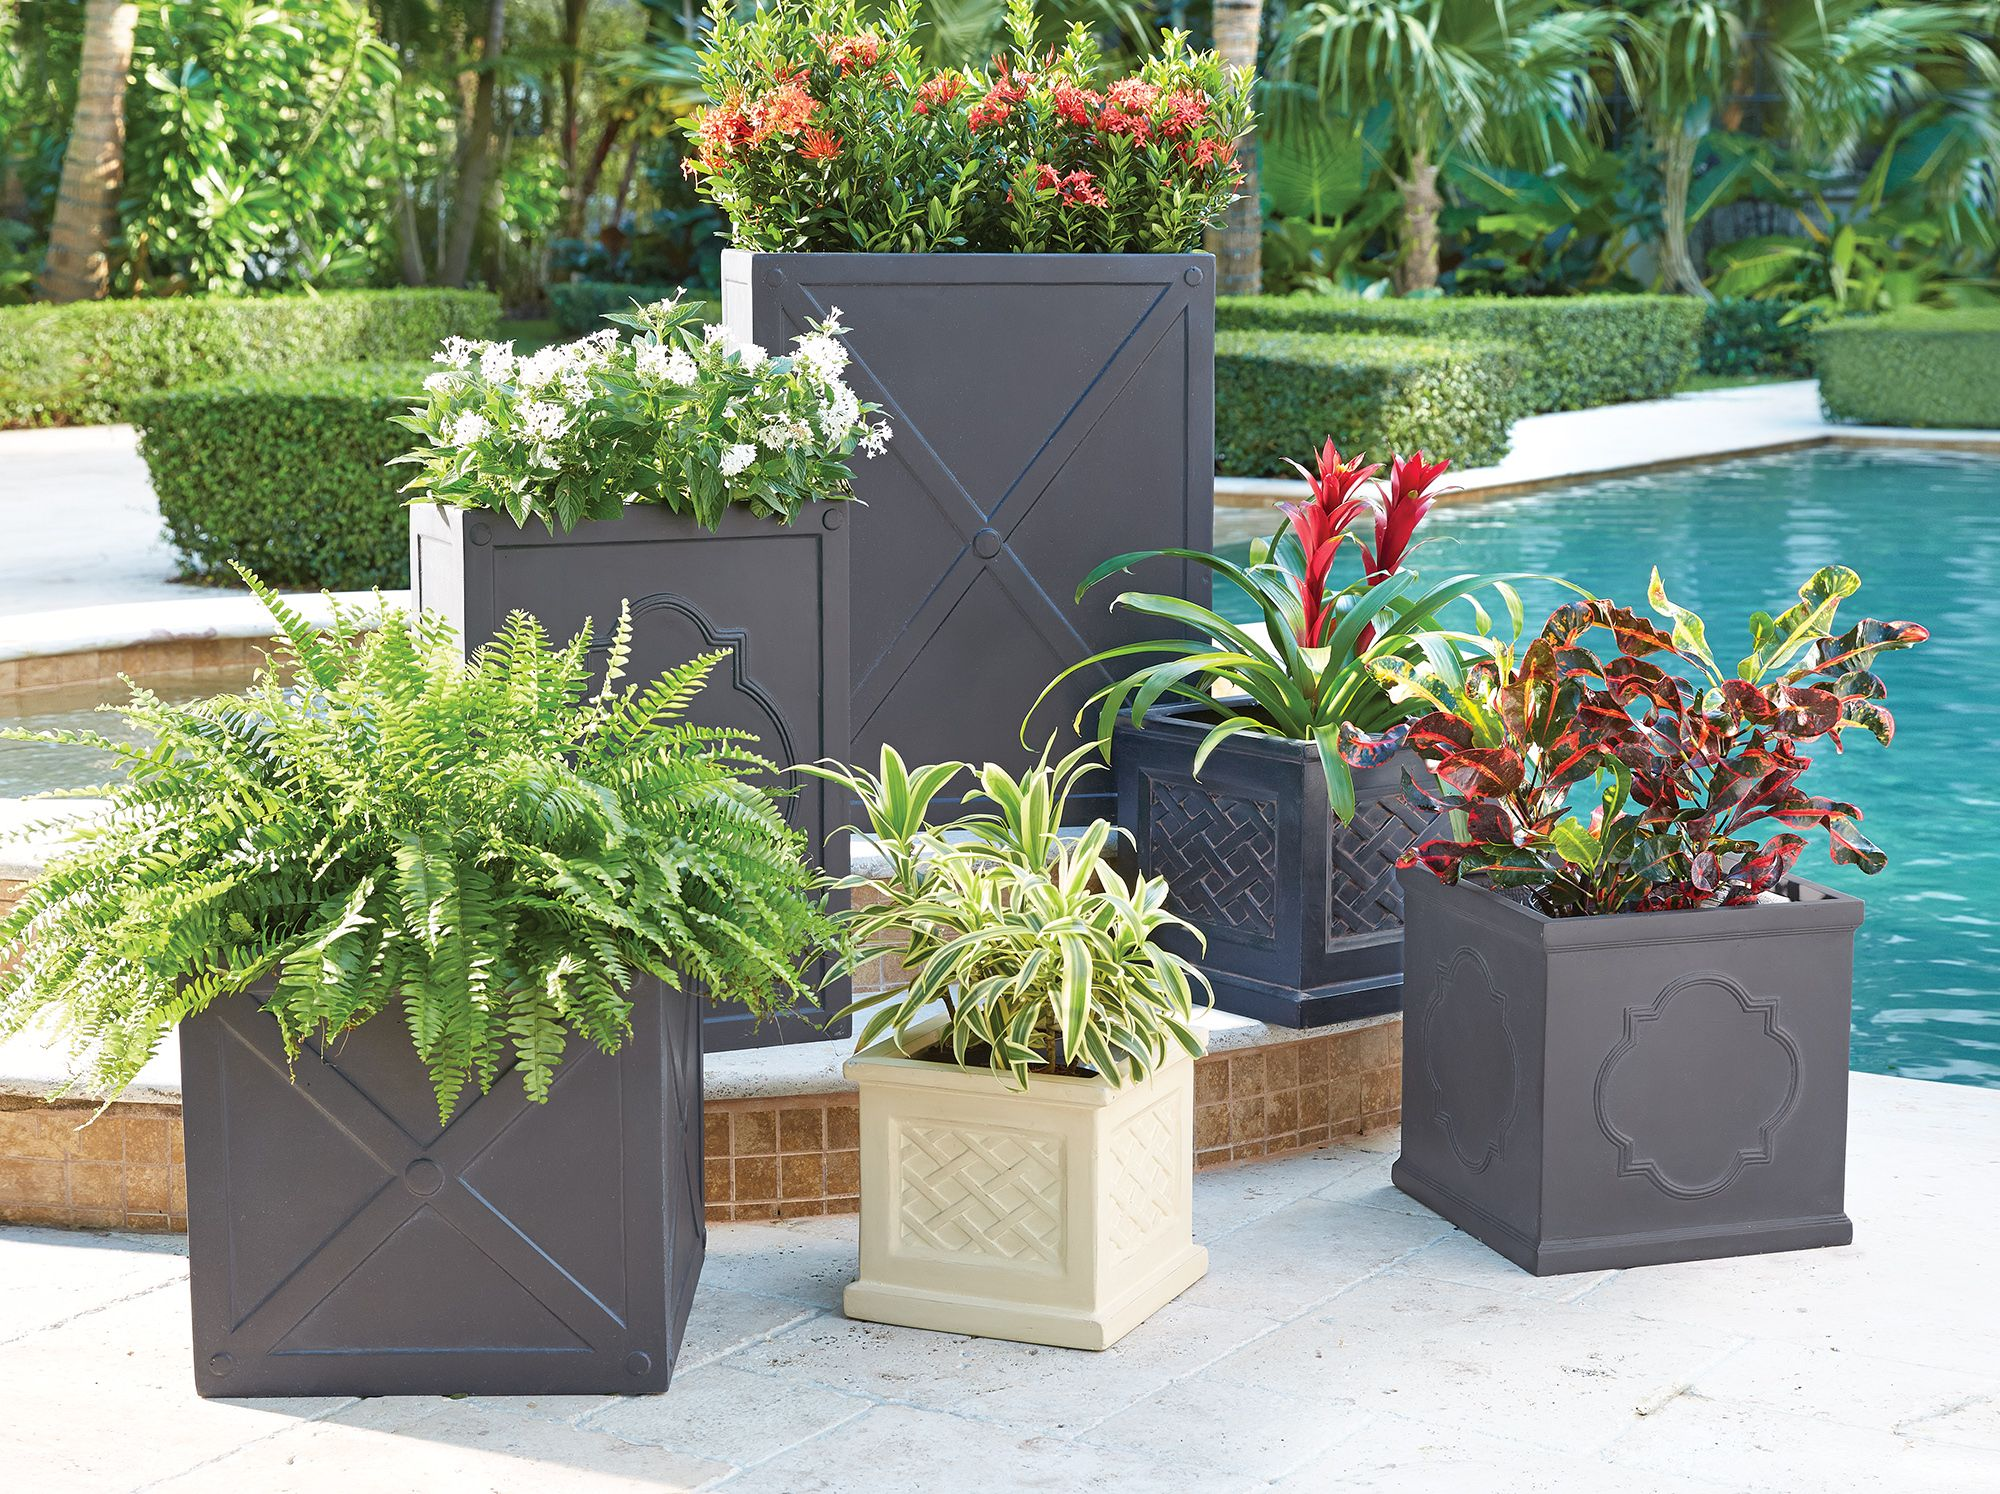 Planters & Window Boxes Garden Planter Pots and